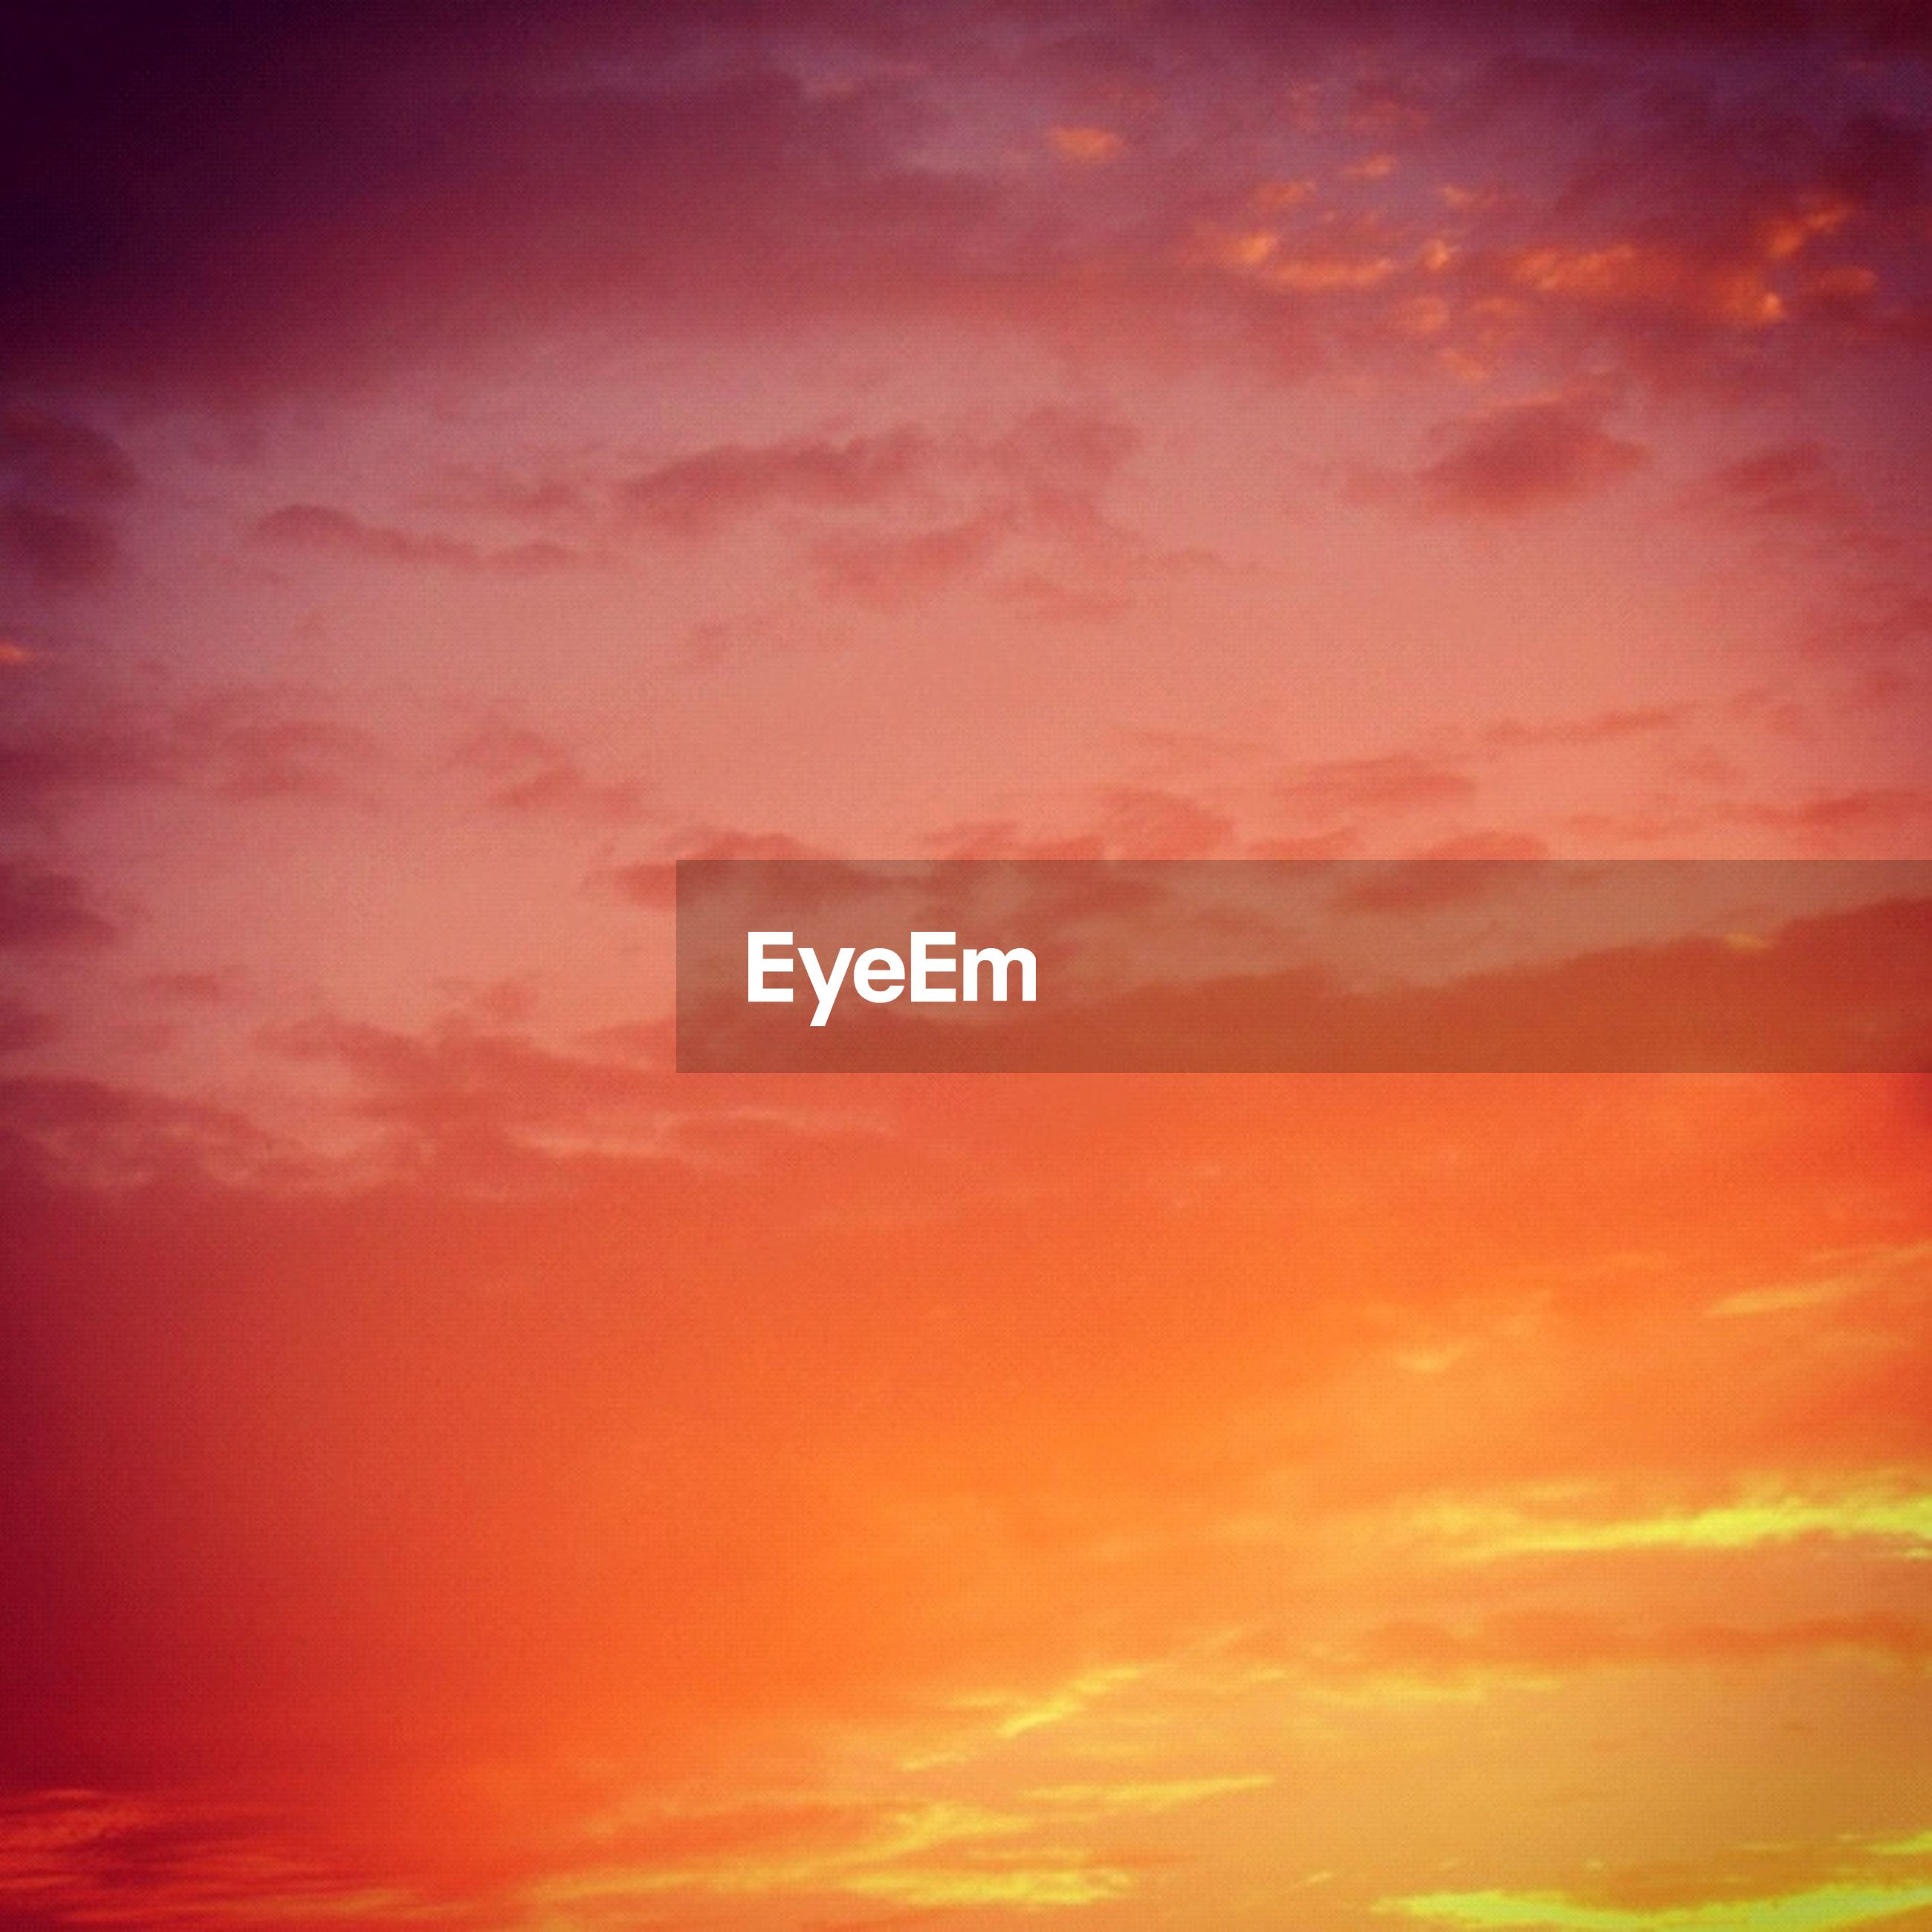 sunset, orange color, sky, beauty in nature, low angle view, scenics, cloud - sky, tranquility, backgrounds, sky only, tranquil scene, nature, red, idyllic, full frame, cloudy, dramatic sky, cloud, outdoors, no people